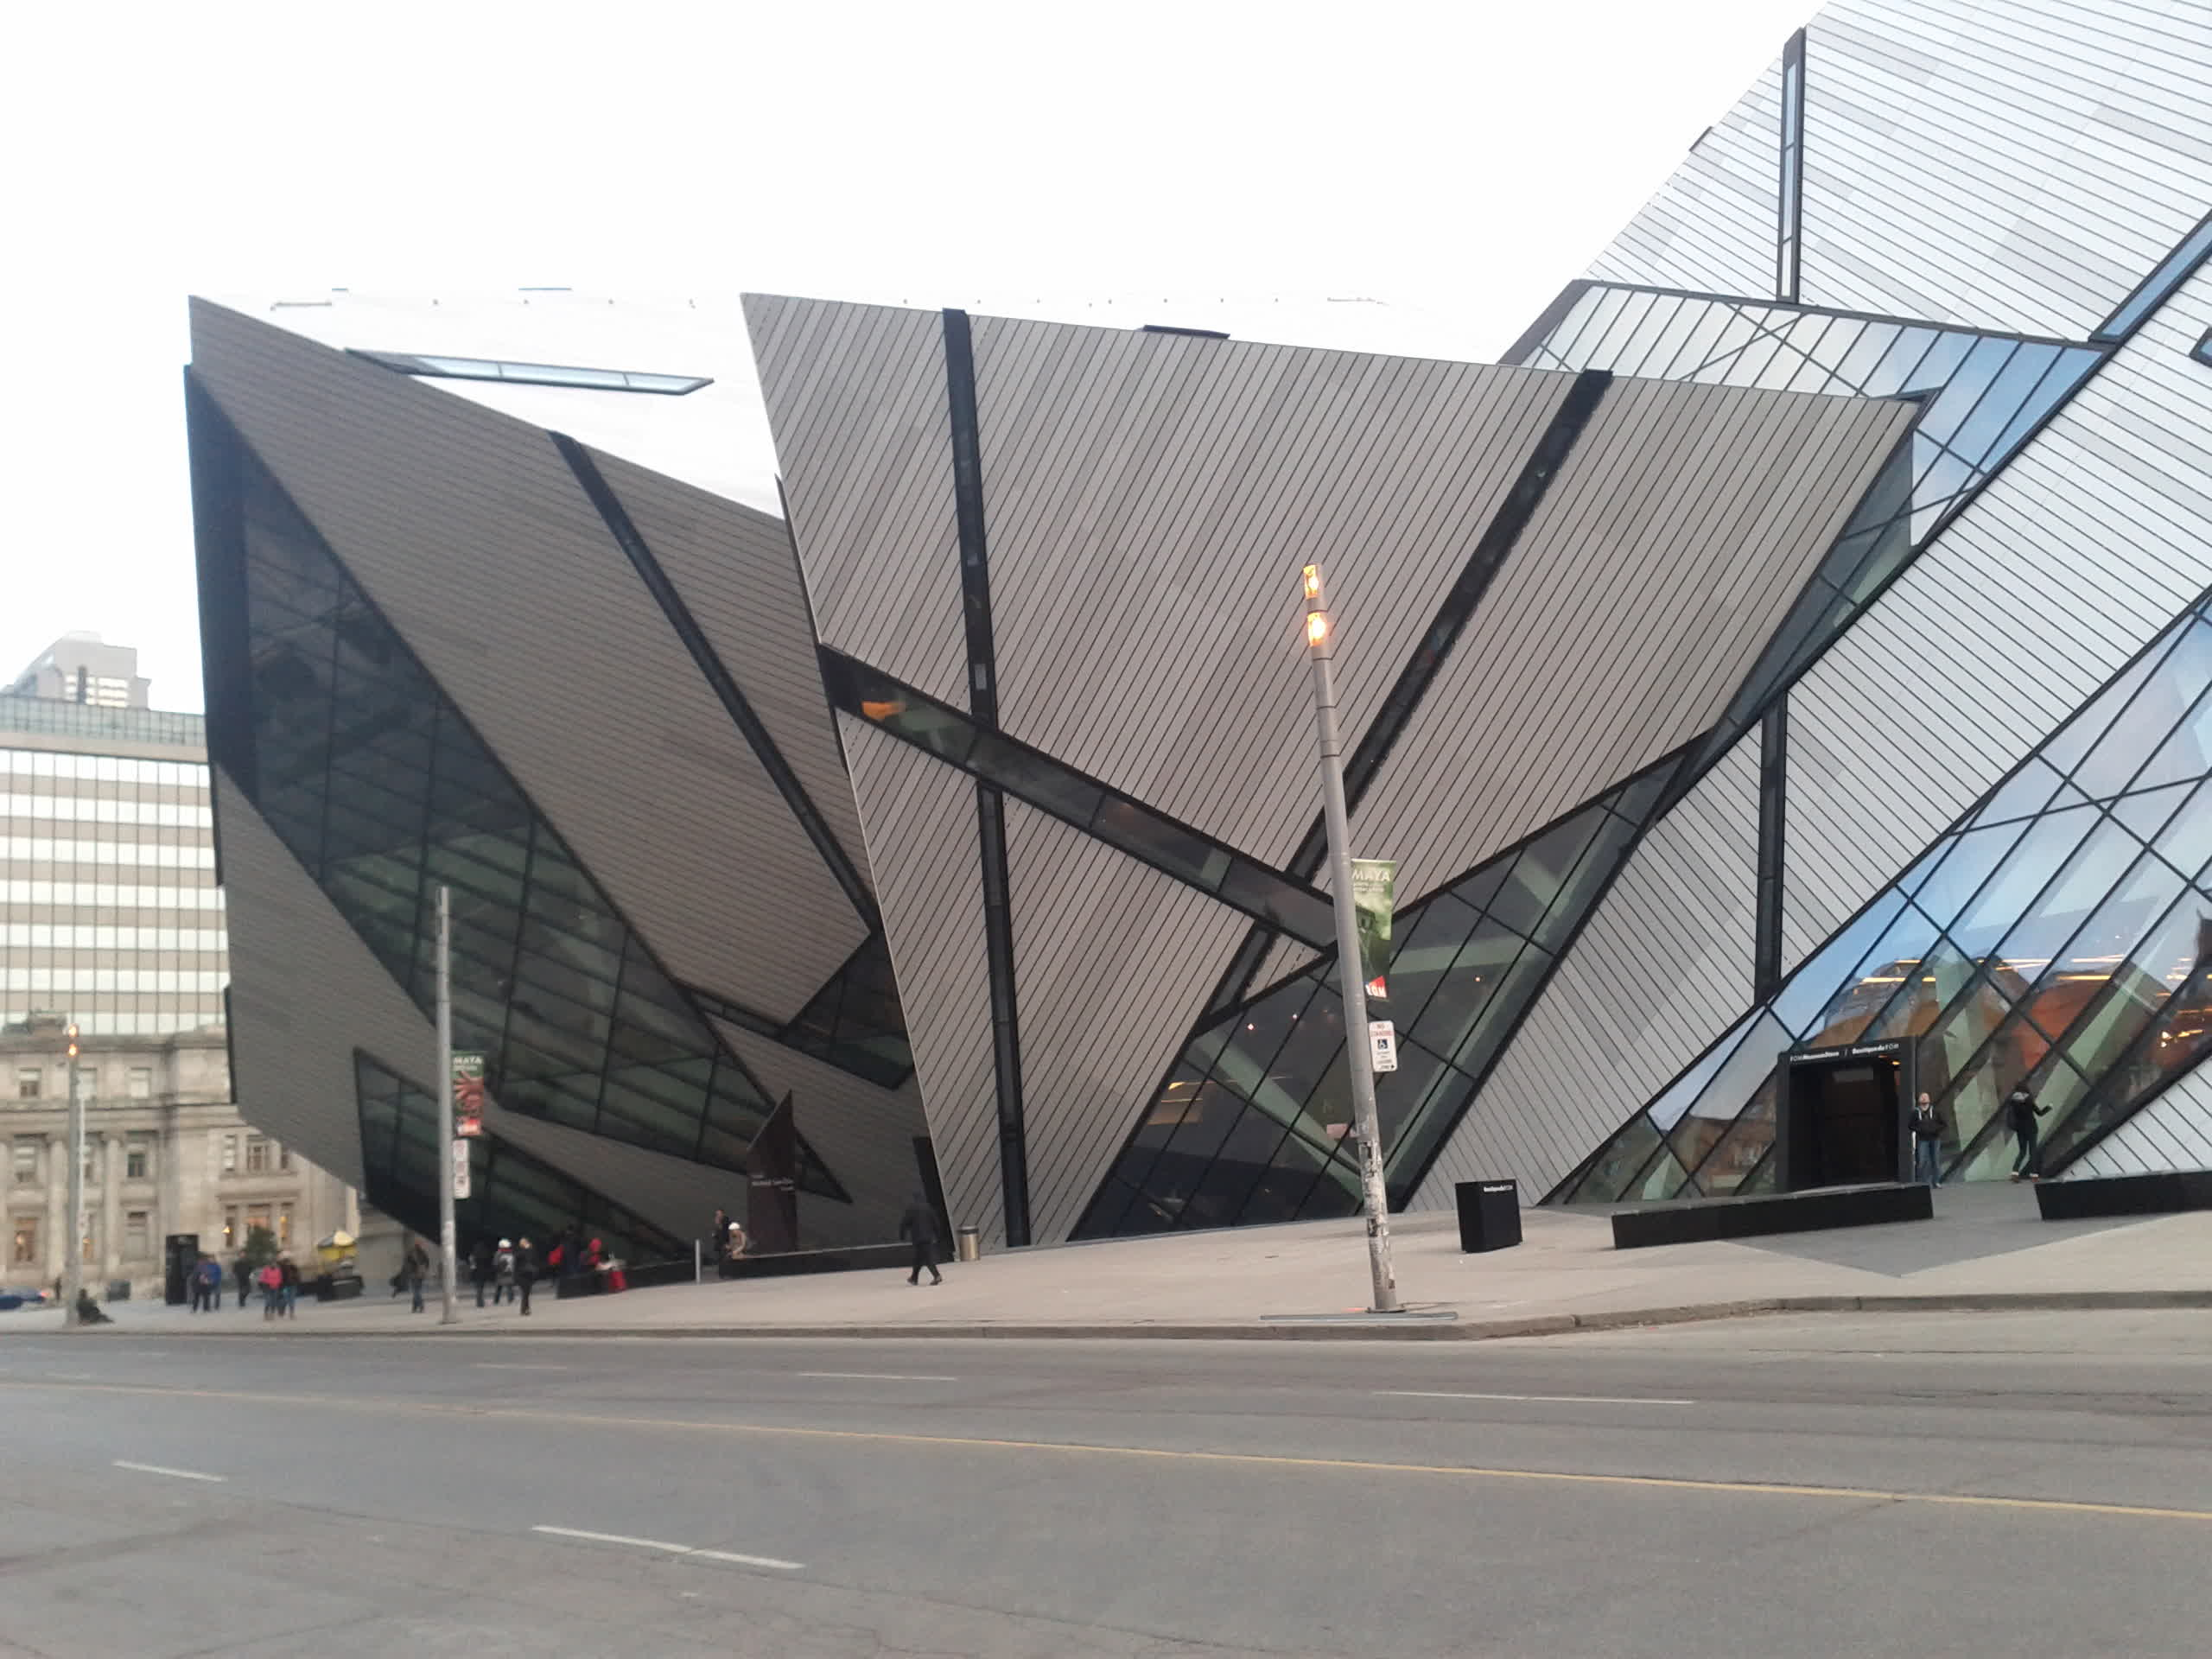 This is the ROM. It's a very impressive building.